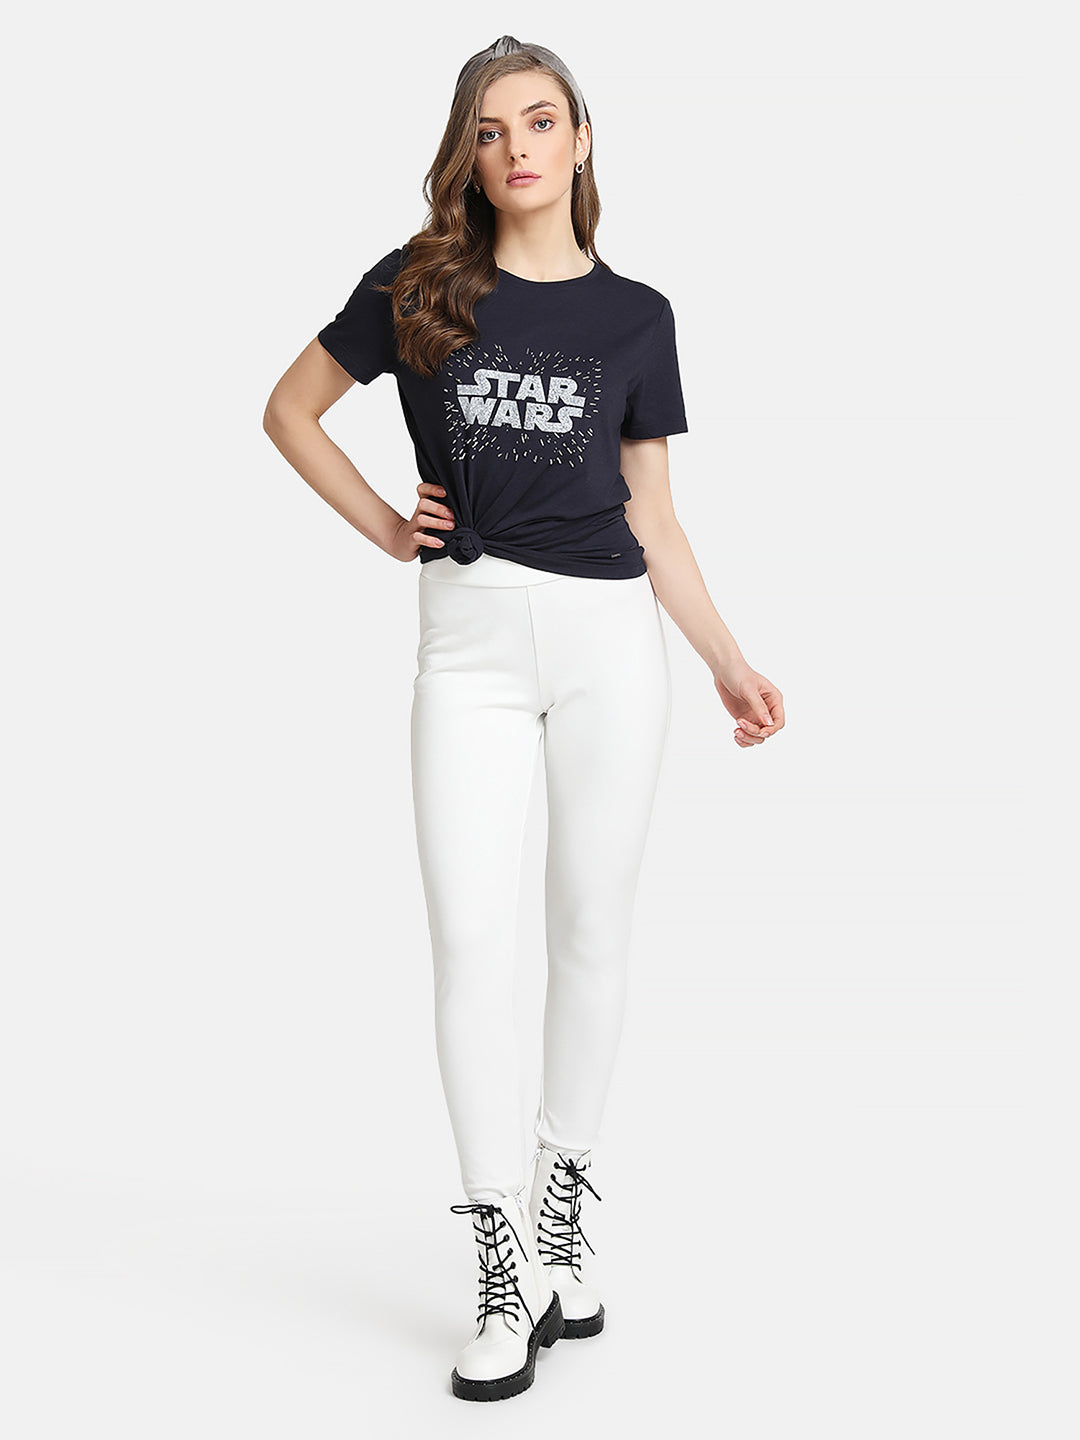 Star Wars © Disney Sequin Party T-Shirt